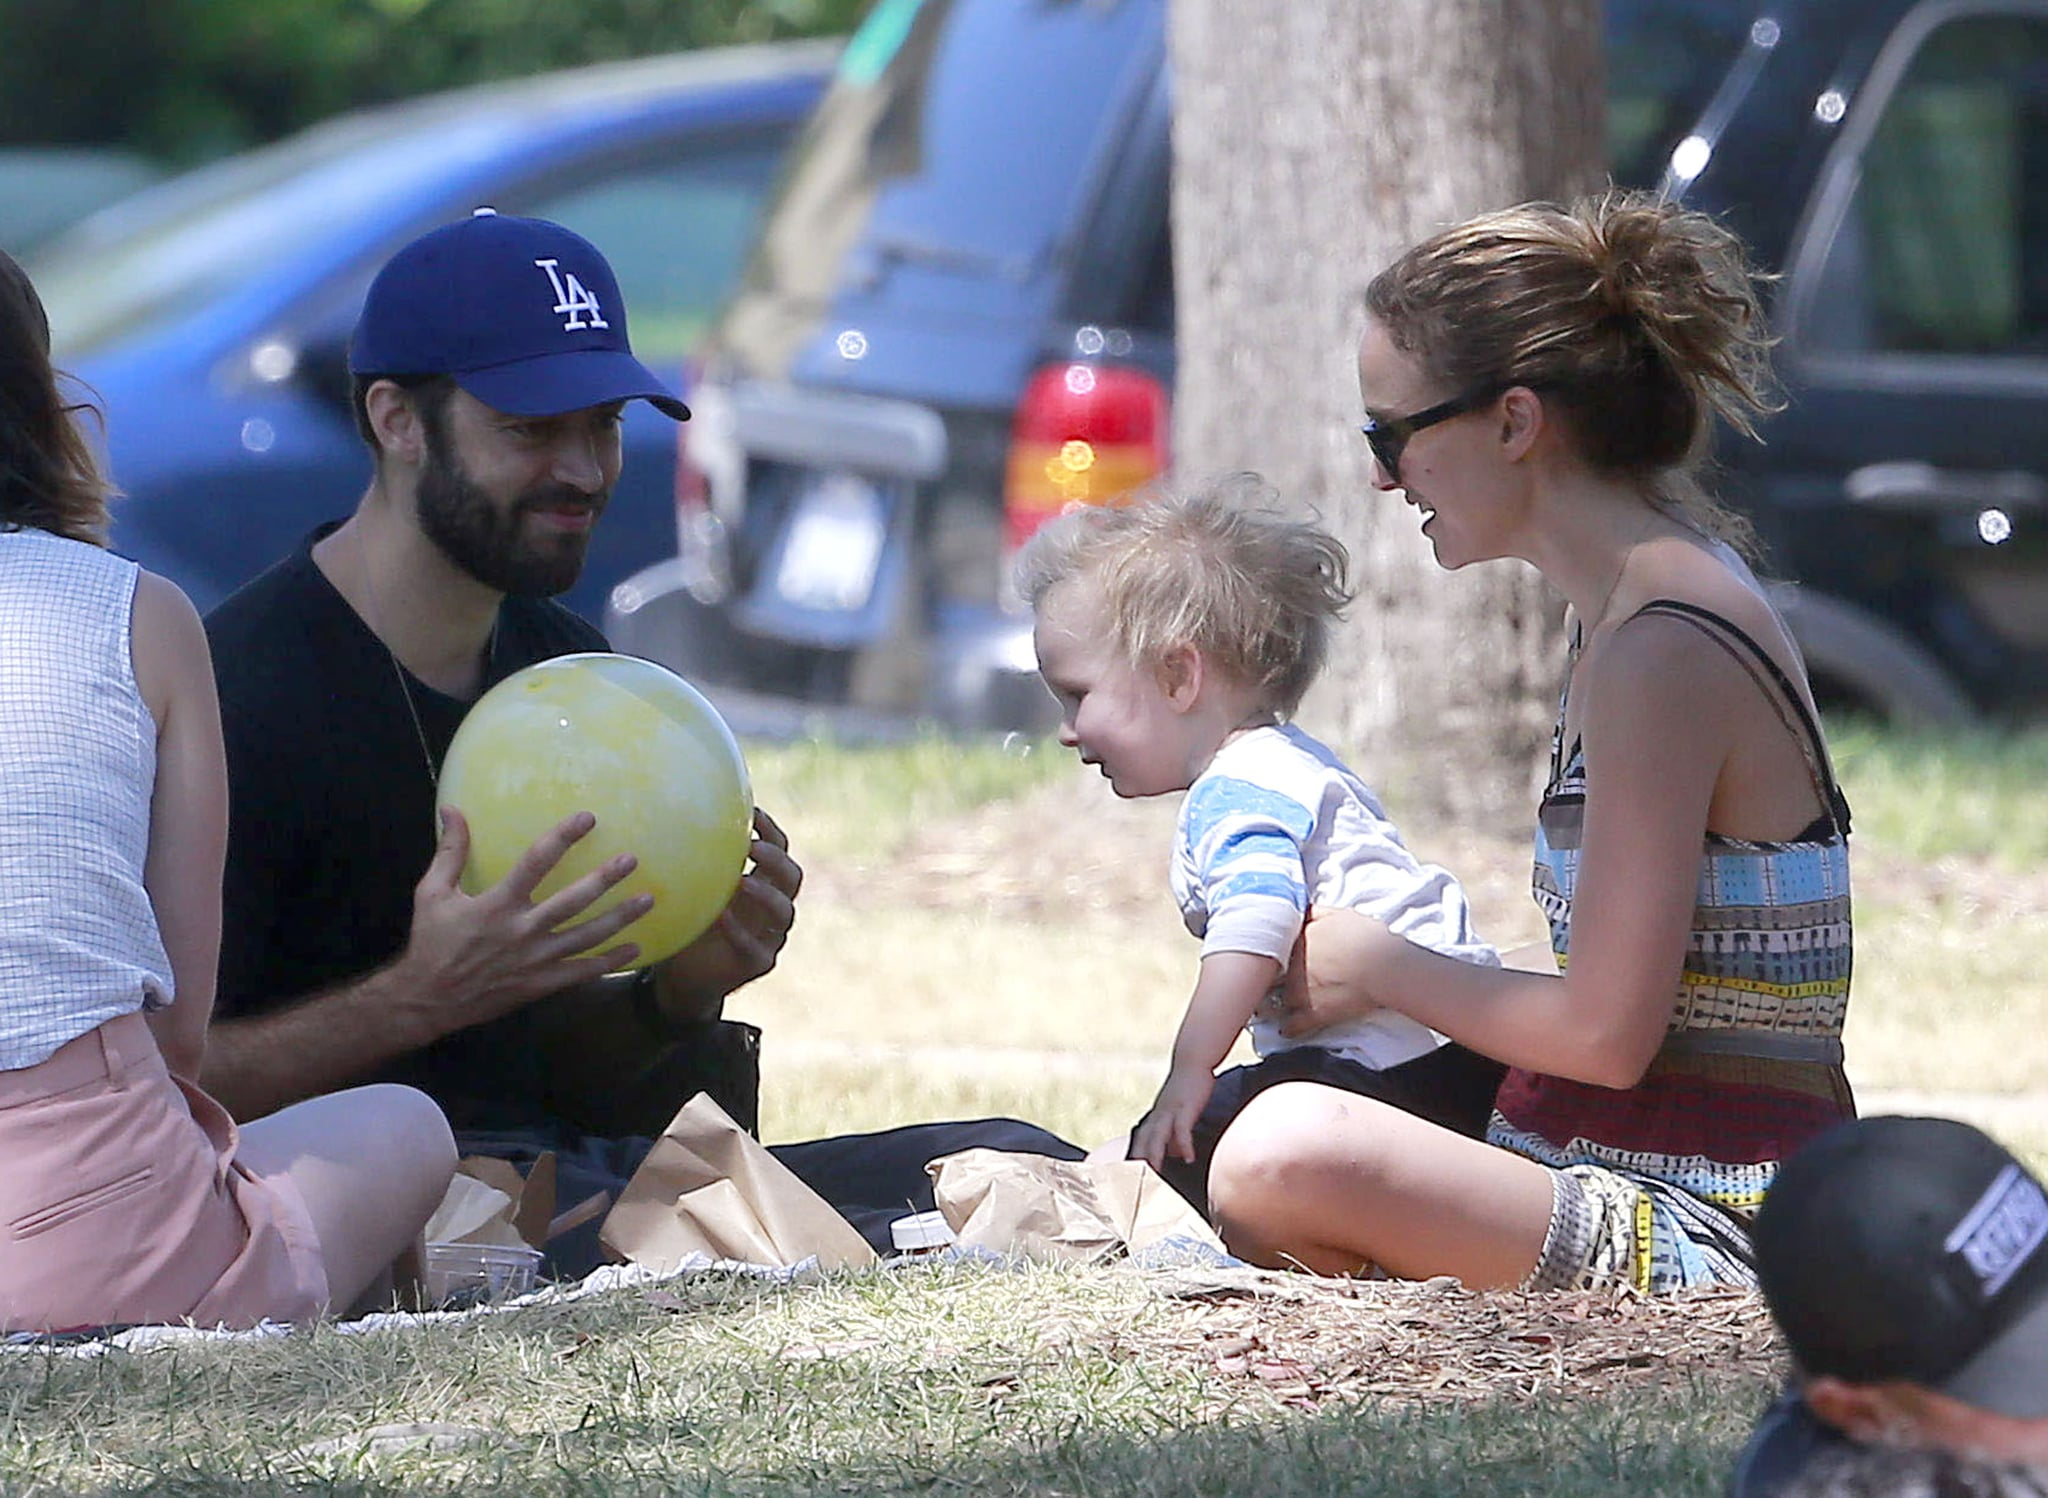 Benjamin Millepied and Natalie Portman played with their son in the grass.